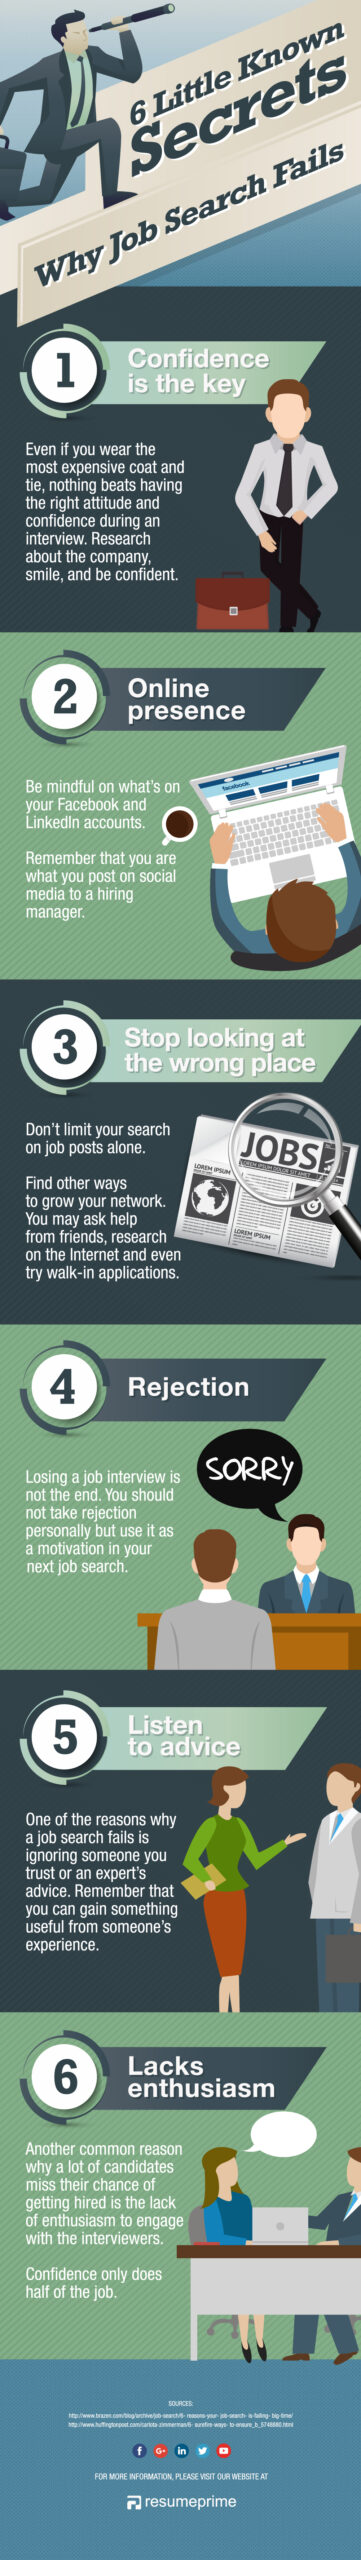 Job Search Fails: 6 Pitfalls to Watch Out For [Infographic]